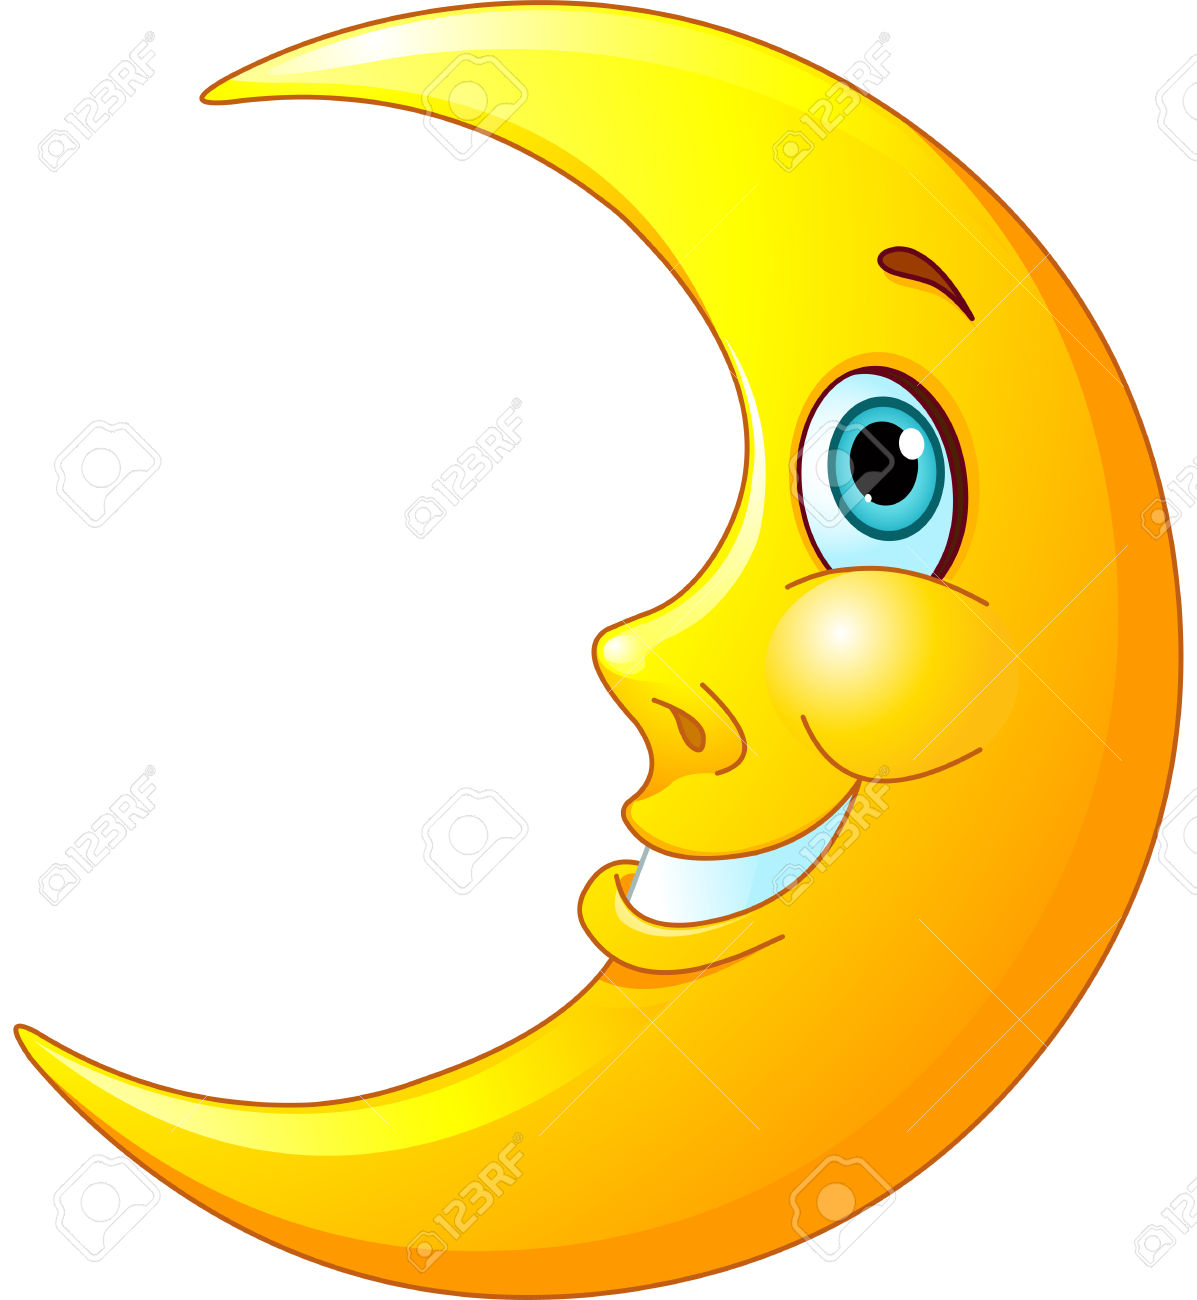 Smiling Moon Clipart.